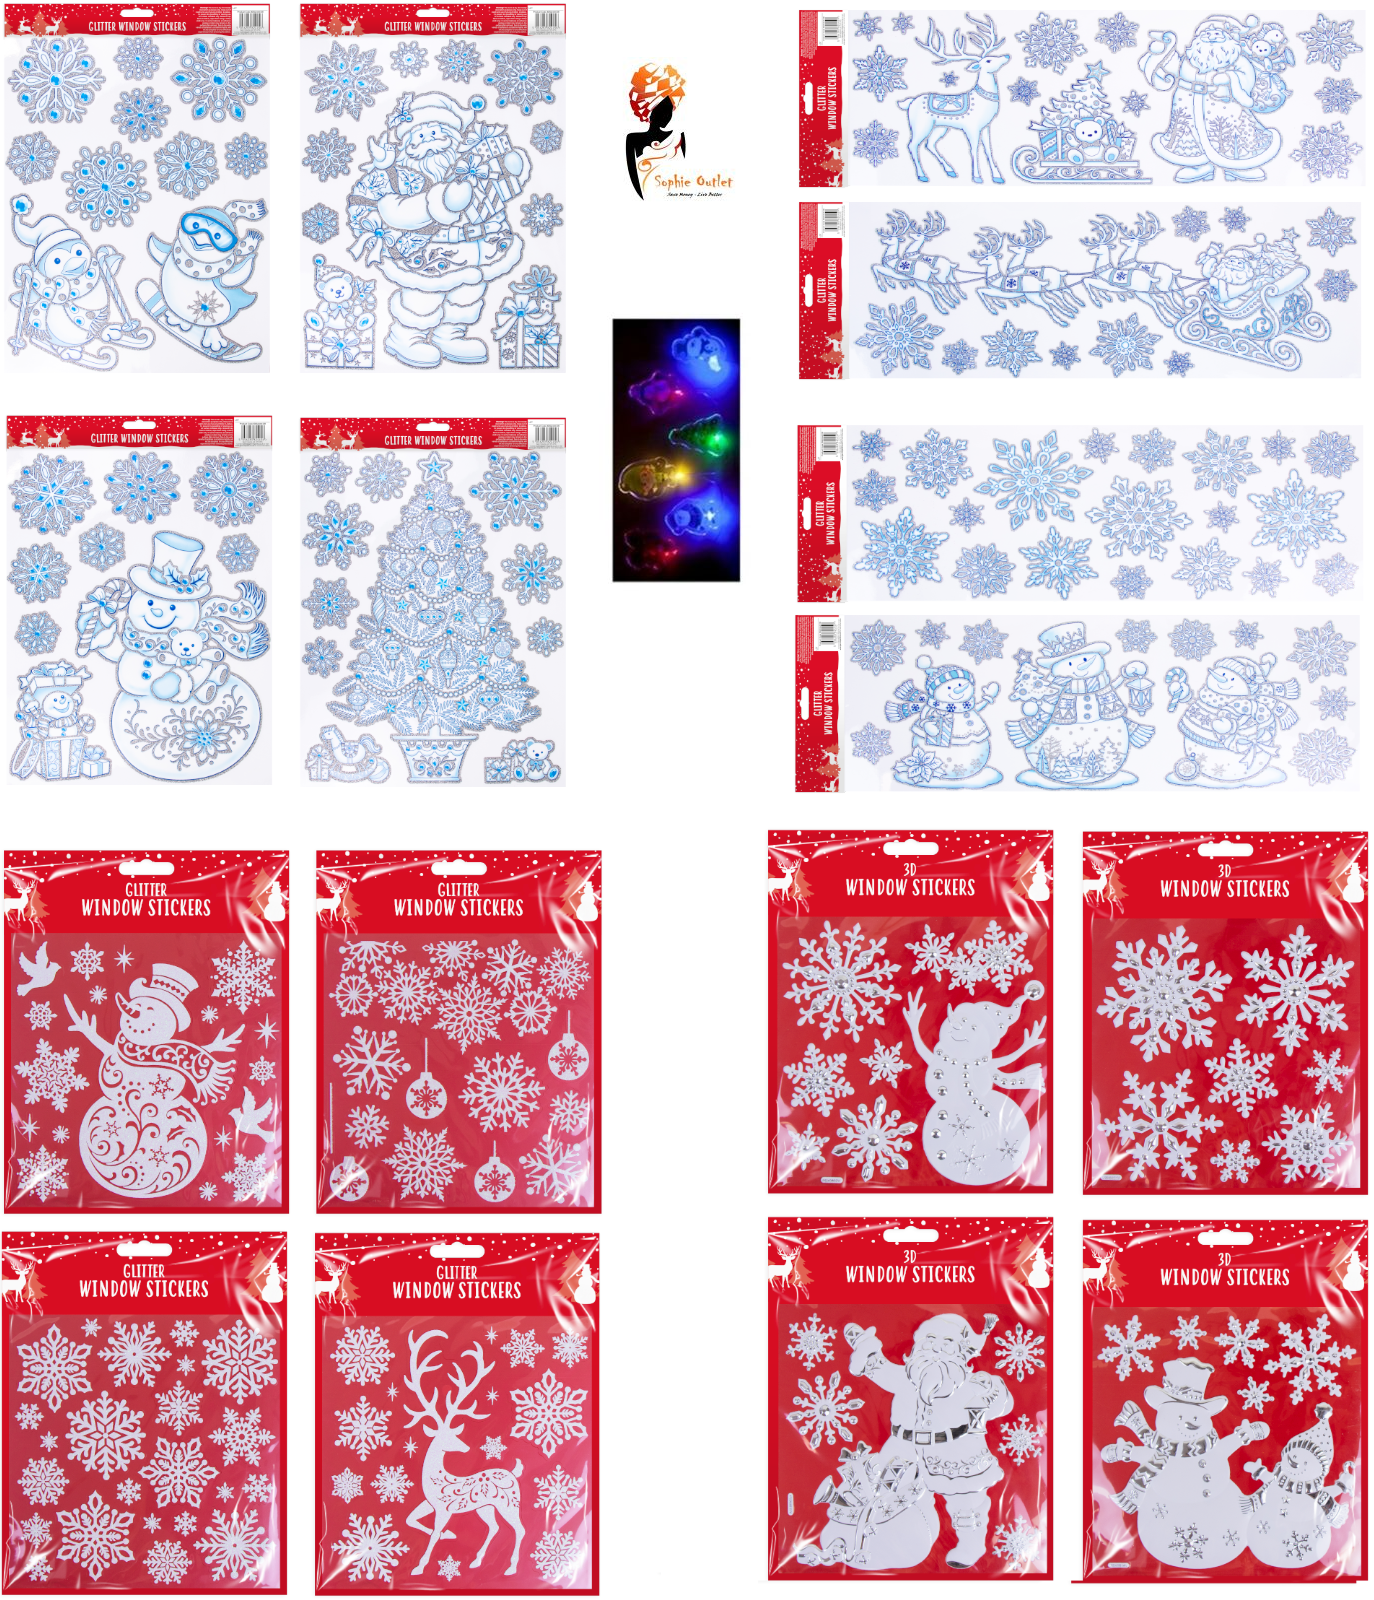 Home Decoration - GEL CHRISTMAS WINDOW STICKERS Xmas Santa Removable Gel Decal Wall Home Decor UK